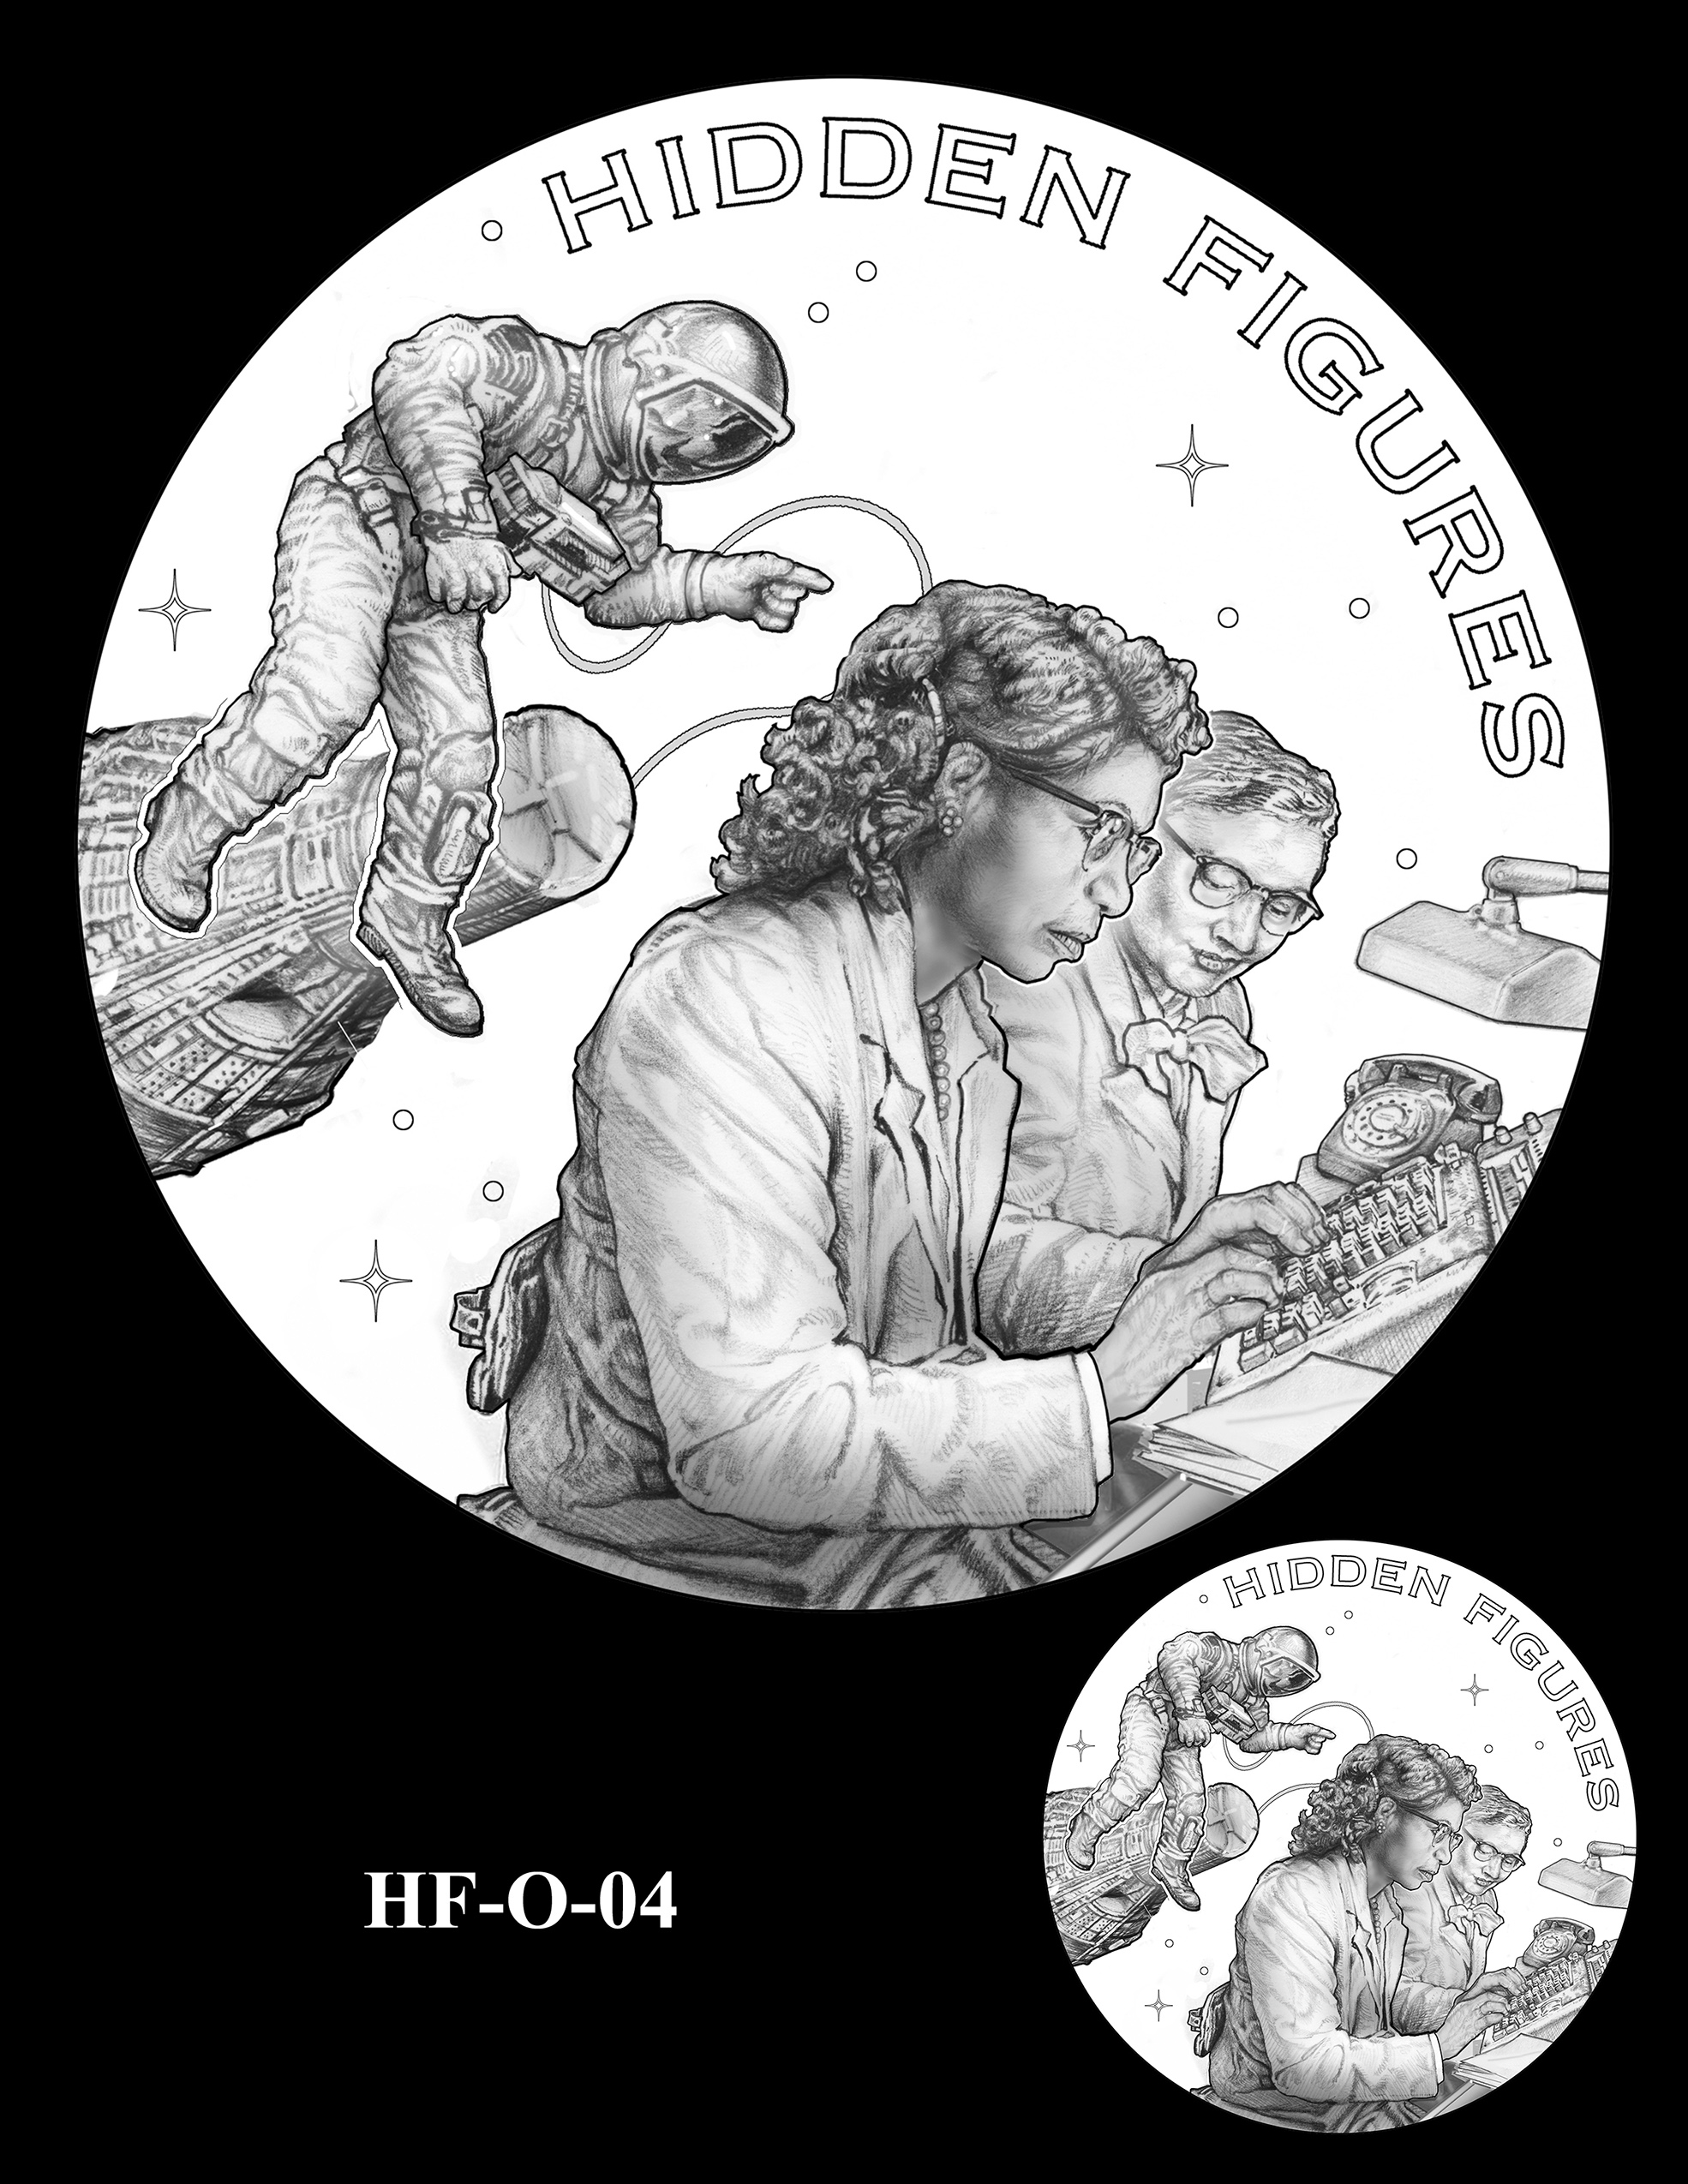 HF-O-04 -- Hidden Figures Group Congressional Gold Medal